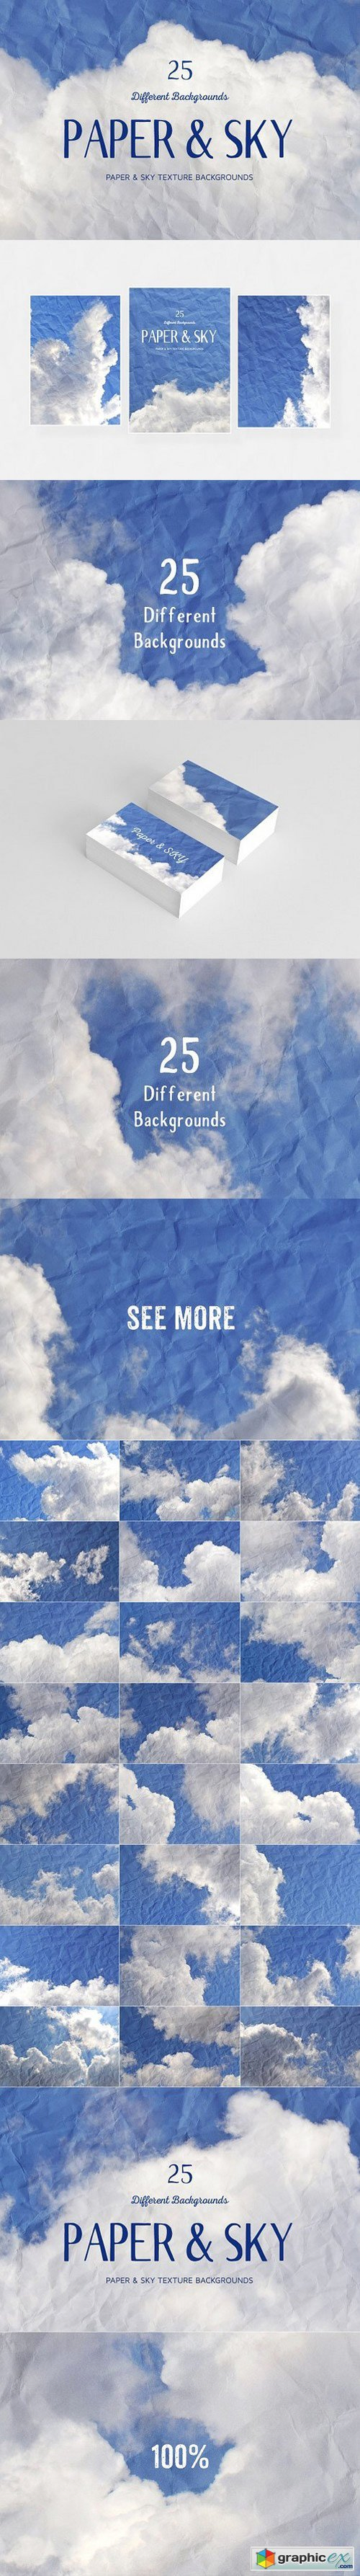 25 Paper & SKY Backgrounds